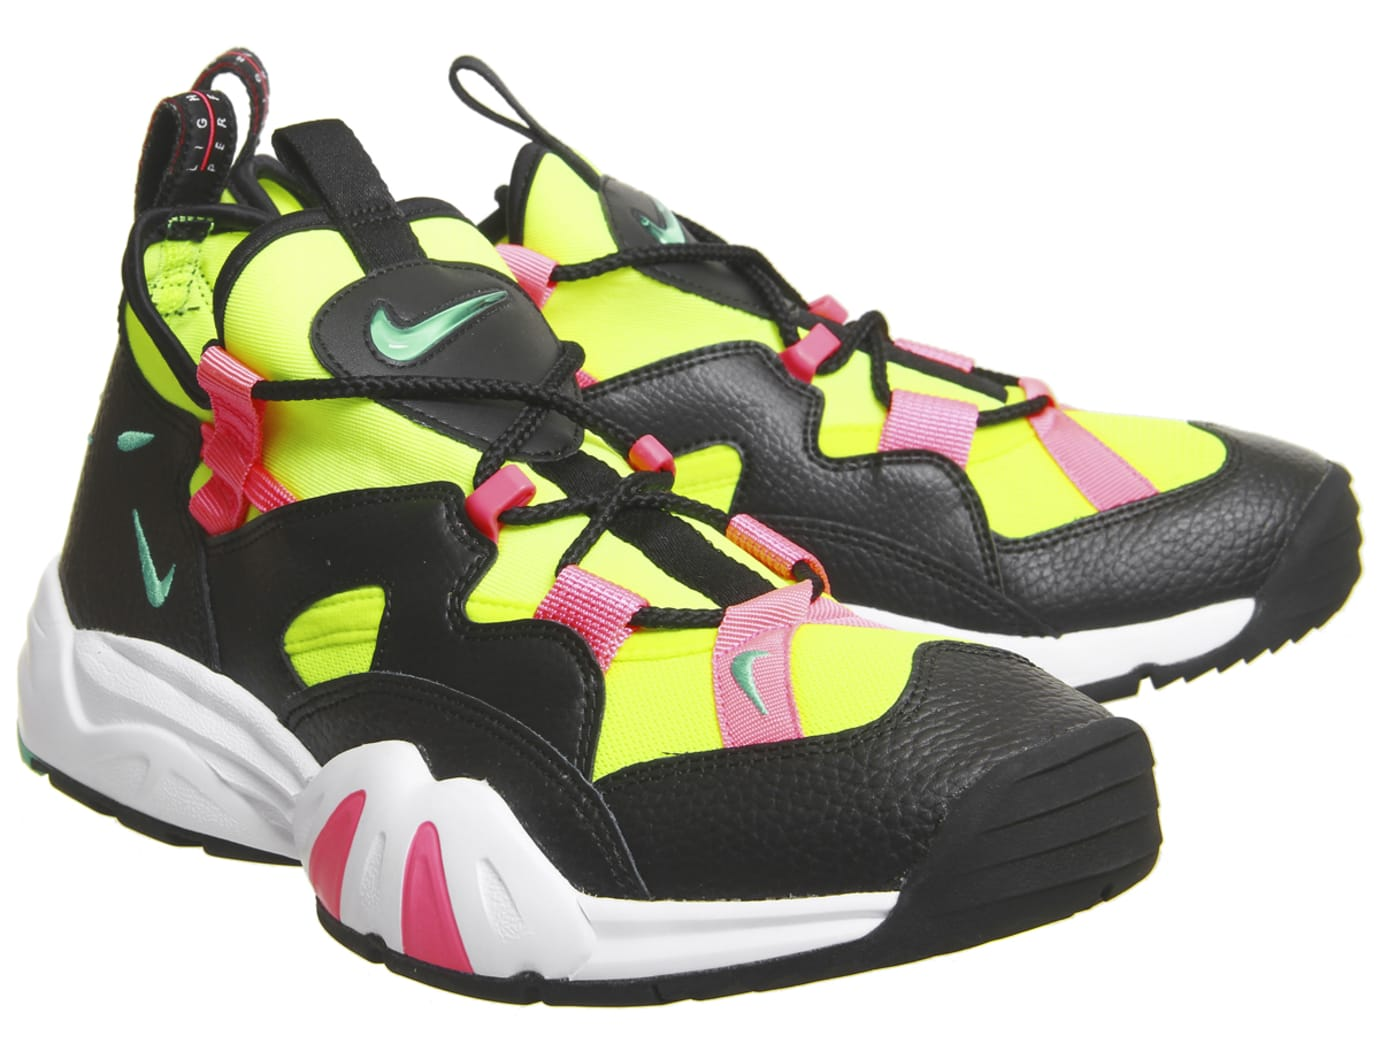 e5342d75f3d1 Nike Air Scream LWP  Black Menta Racer Pink  Available Now